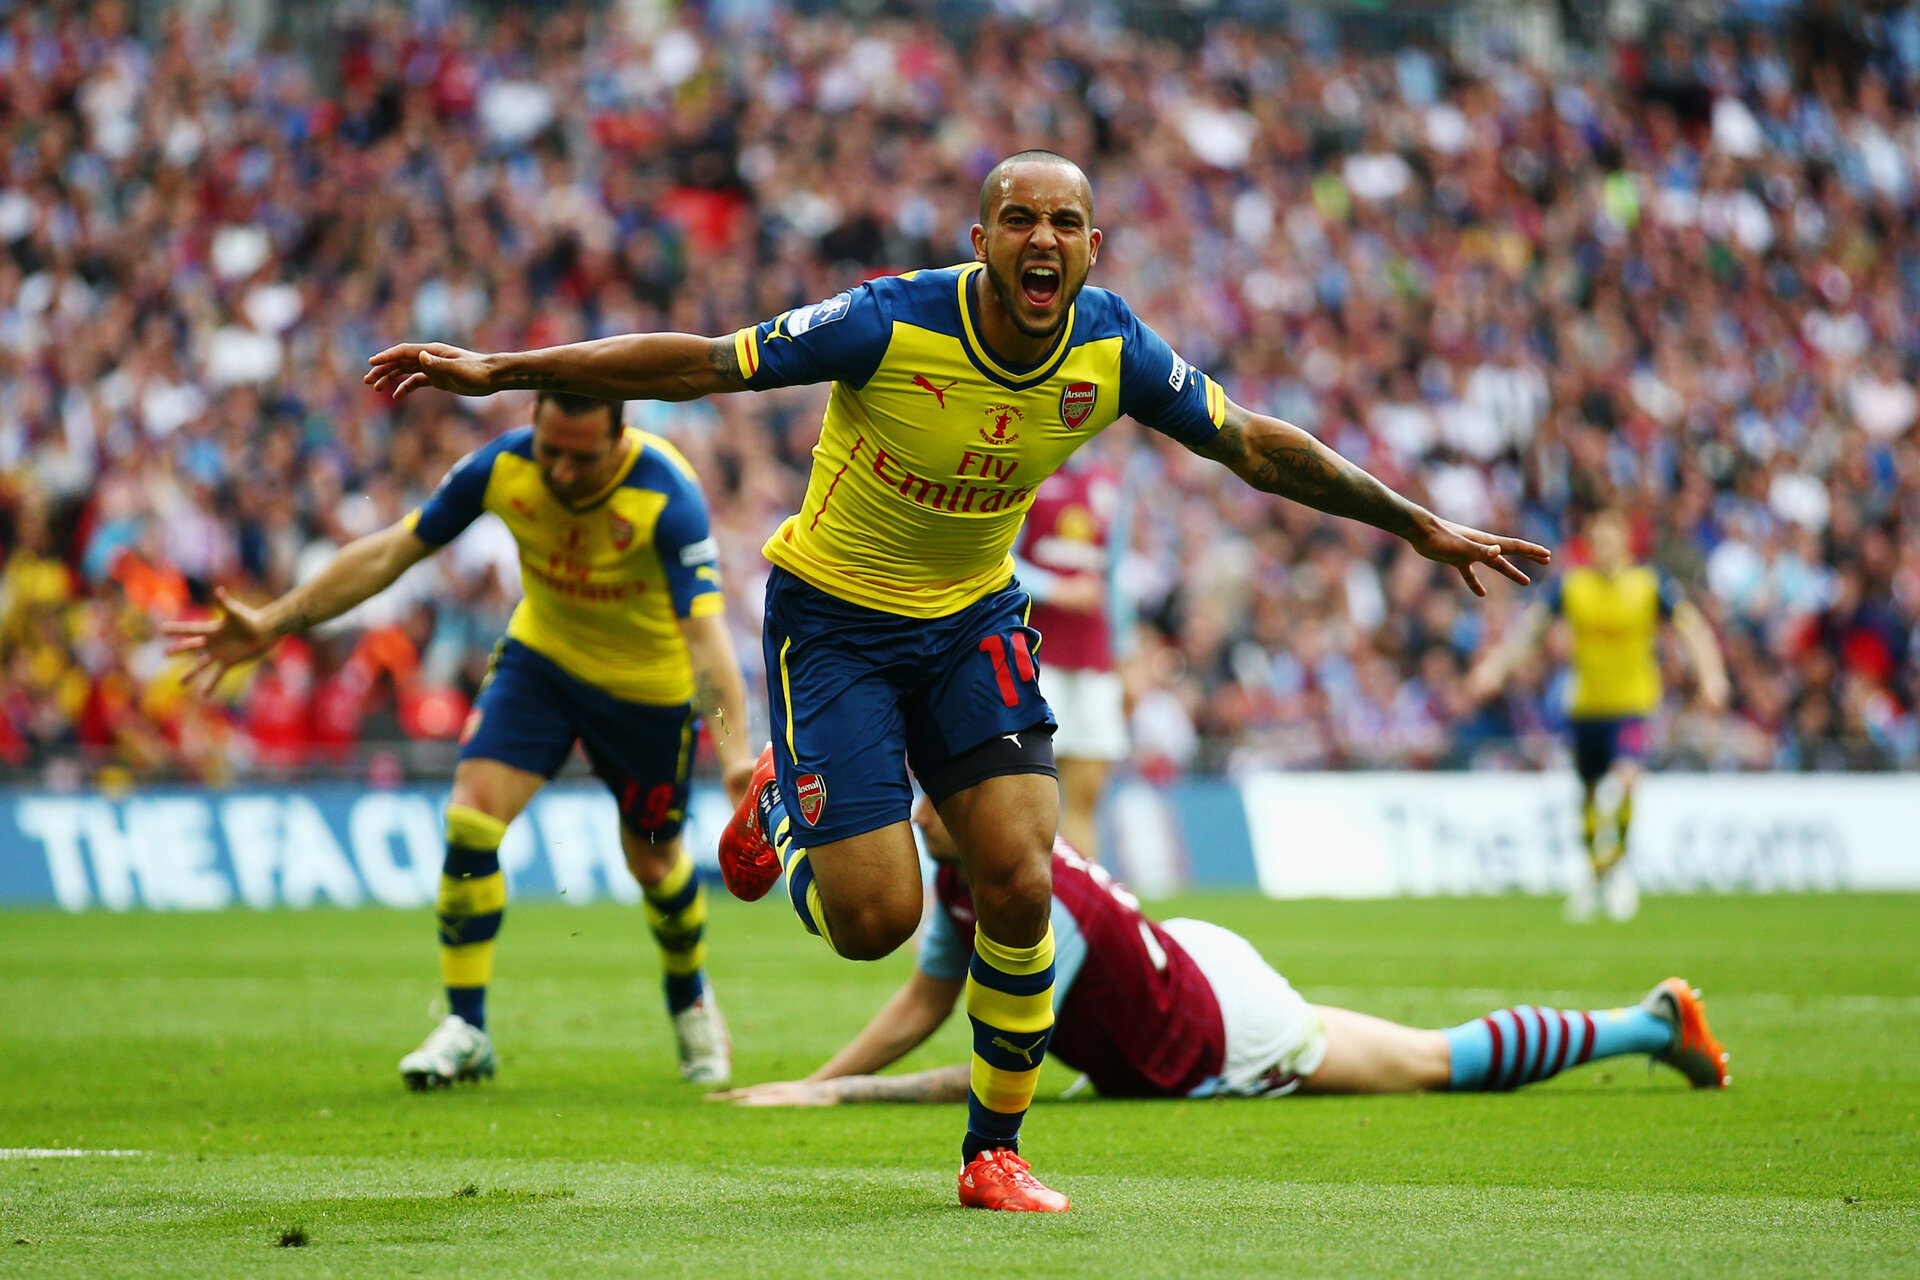 LONDON, ENGLAND - MAY 30:  Theo Walcott of Arsenal celebrates as he scores their first goal during the FA Cup Final between Aston Villa and Arsenal at Wembley Stadium on May 30, 2015 in London, England.  (Photo by Paul Gilham/Getty Images)